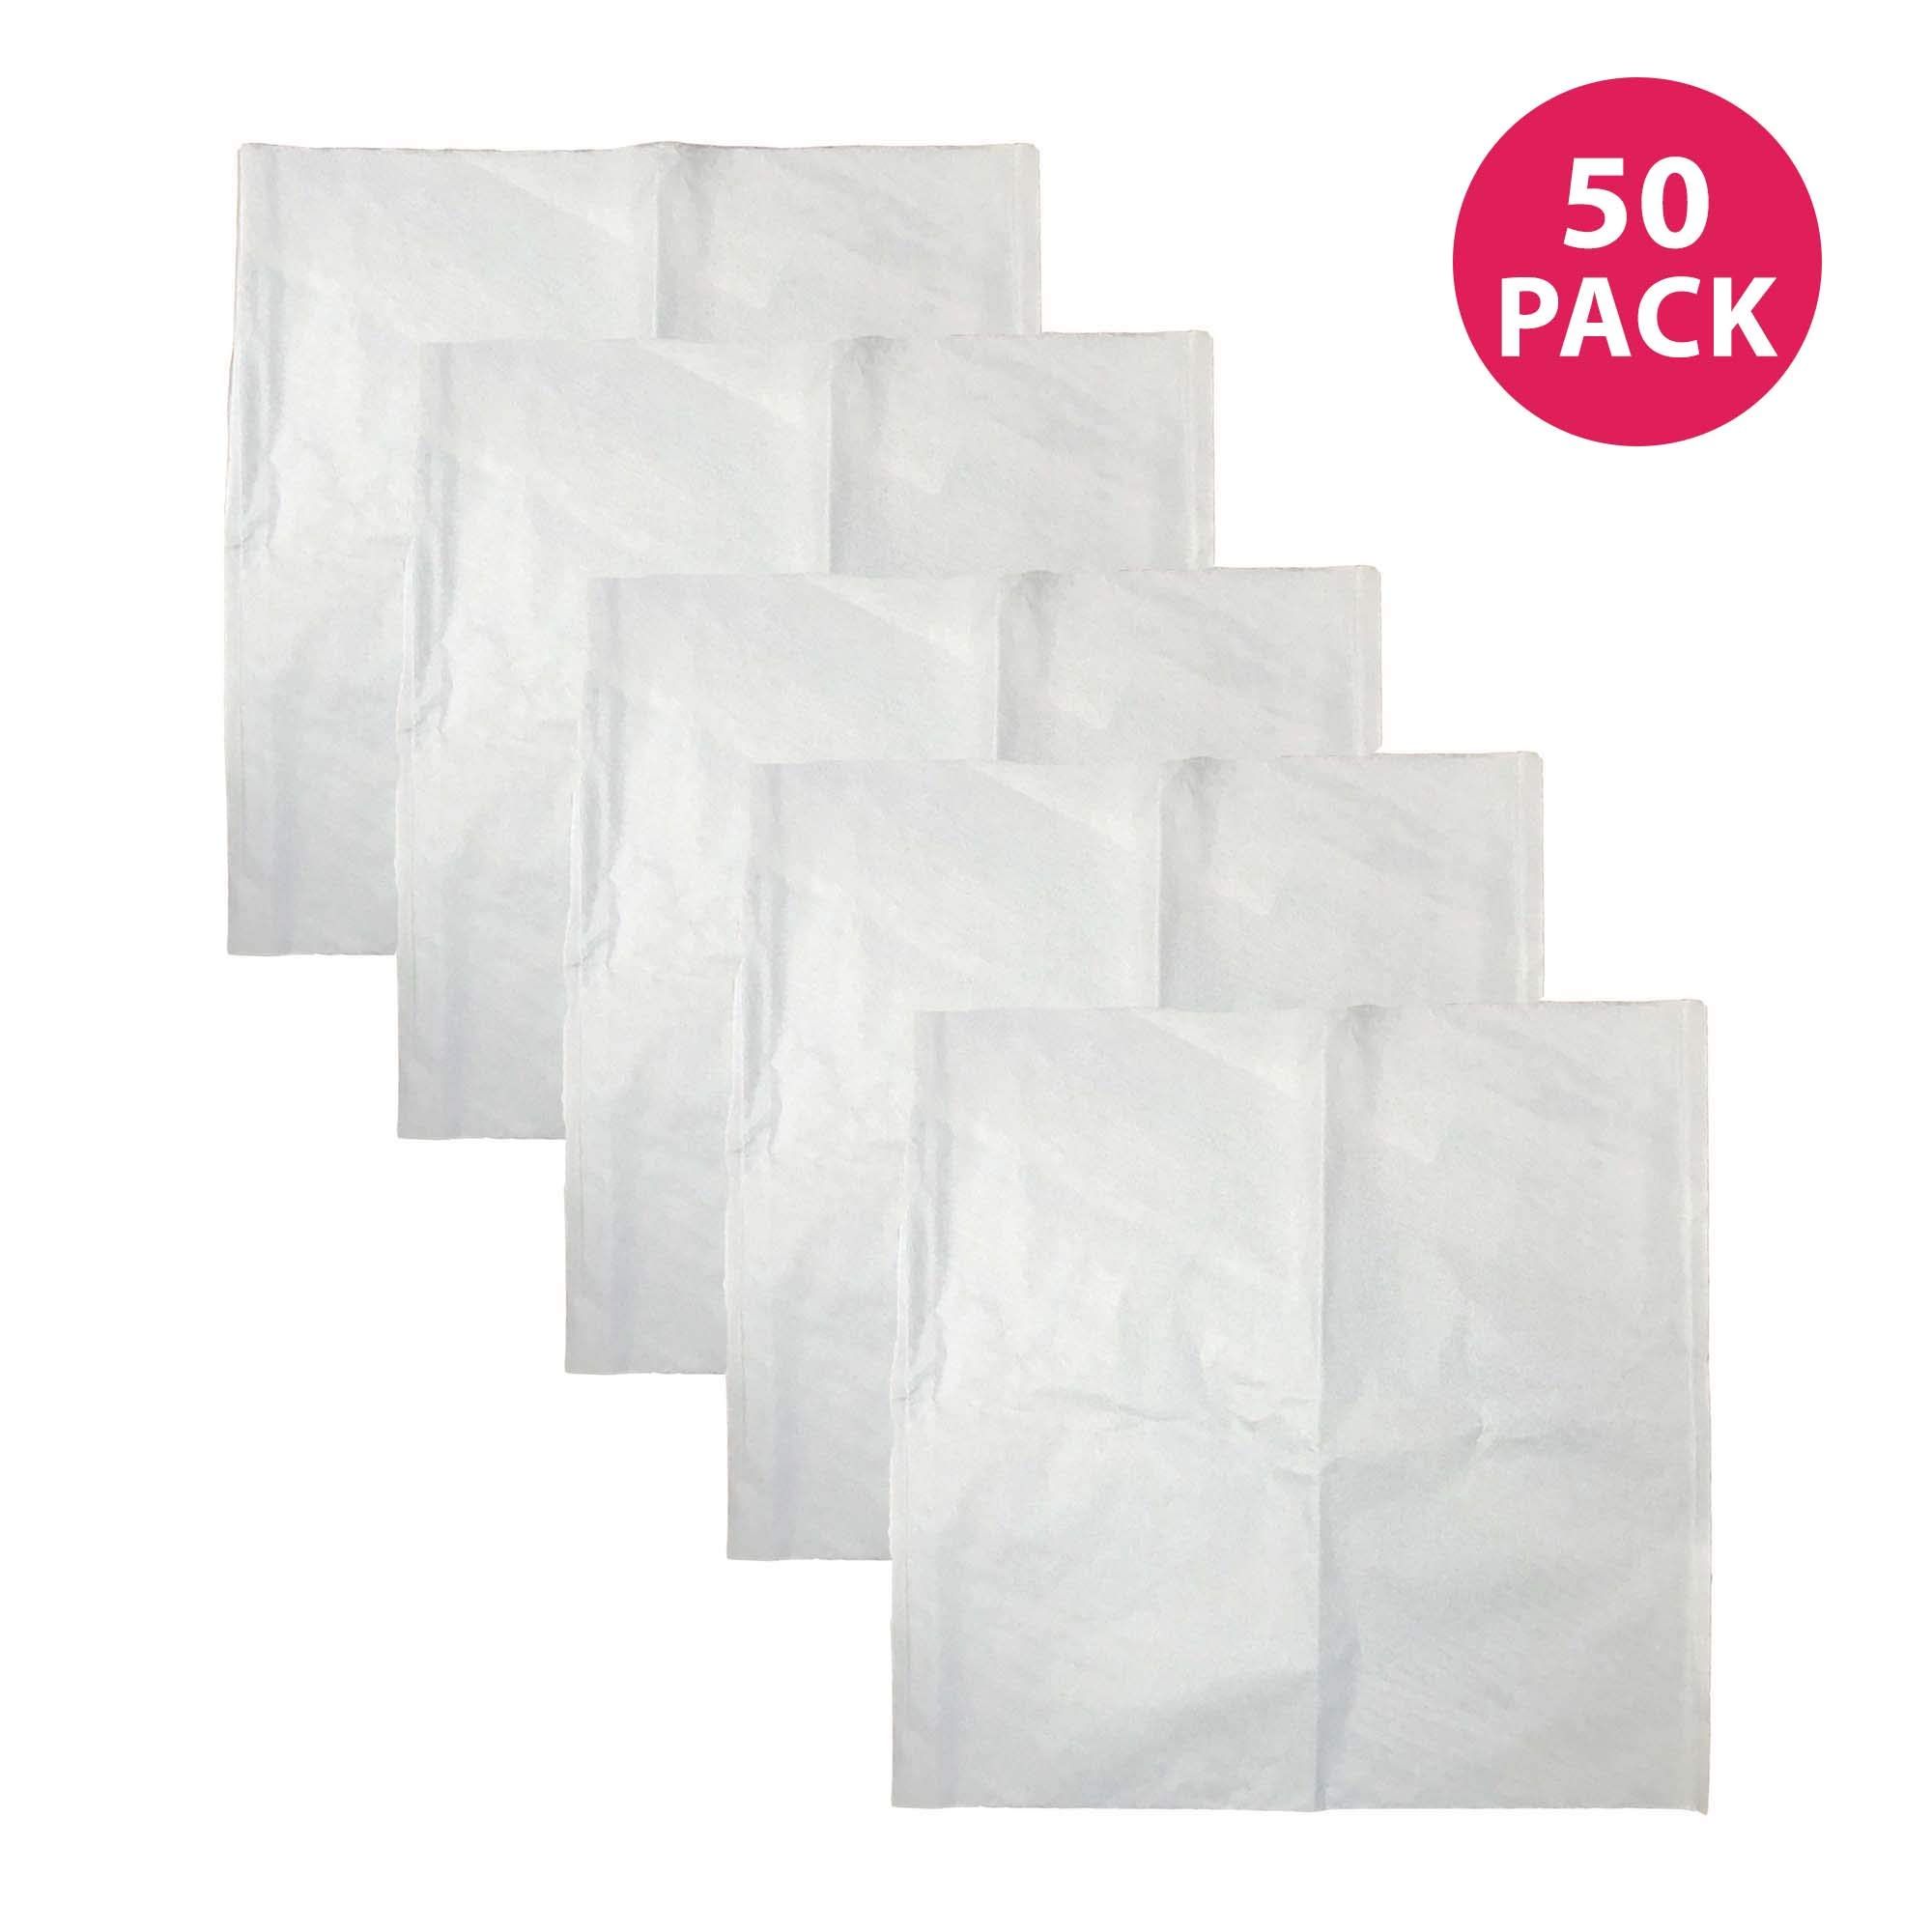 Think Crucial Replacement Coffee Filters Compatible With Toddy Paper Coffee Filter Part - 20.3 x 11.1 x 0.4 - Perfect For Cold Brew System Five (5) Gallon Commercial Cold Brew Brewers (50 Pack)